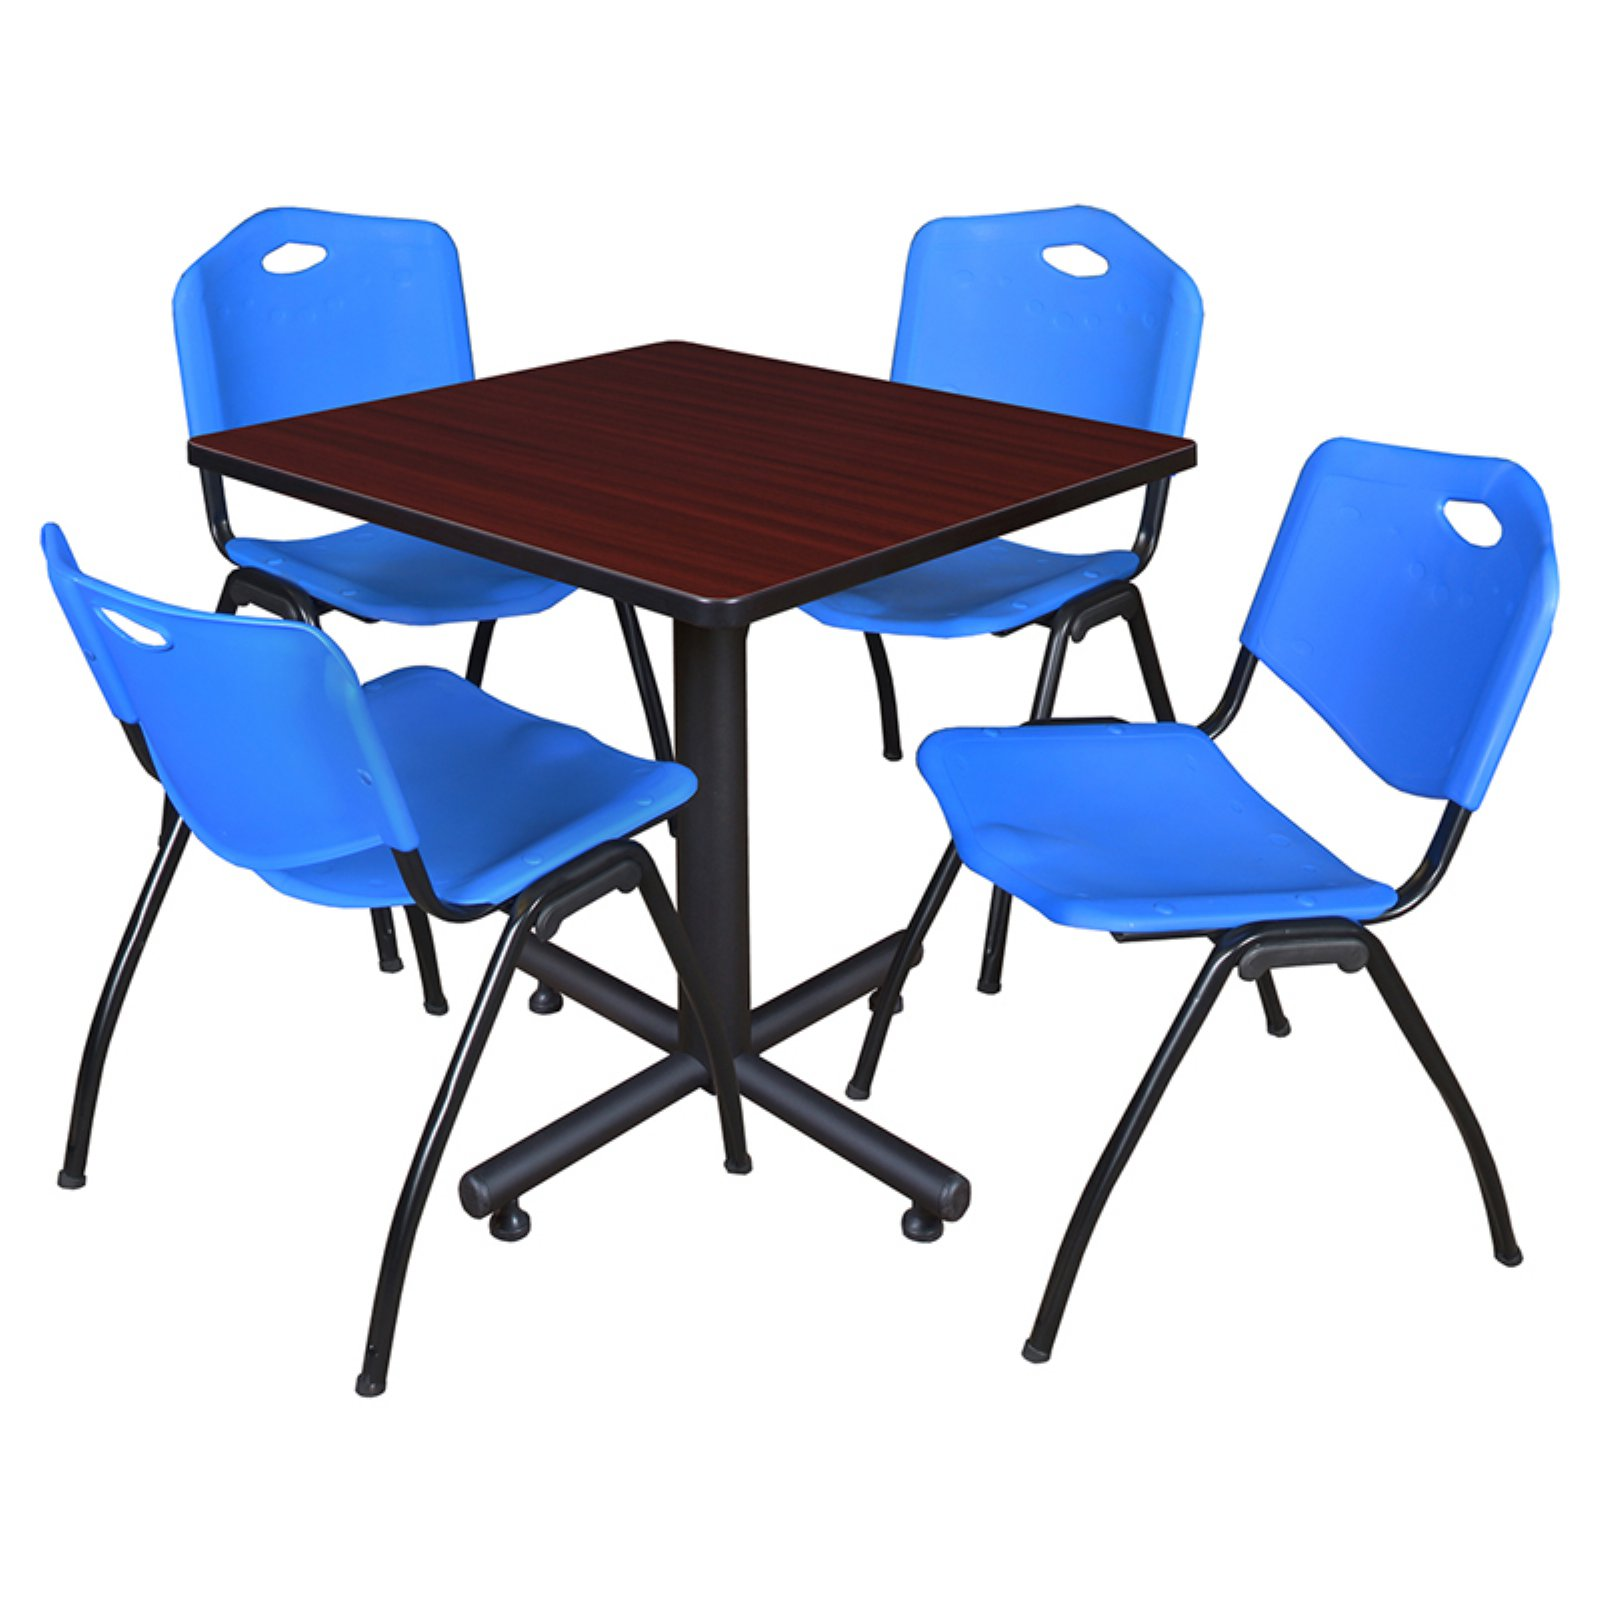 "Kobe 30"" Mahogany Square Breakroom Table and 4 'M' Stack Chairs, Multiple Colors"